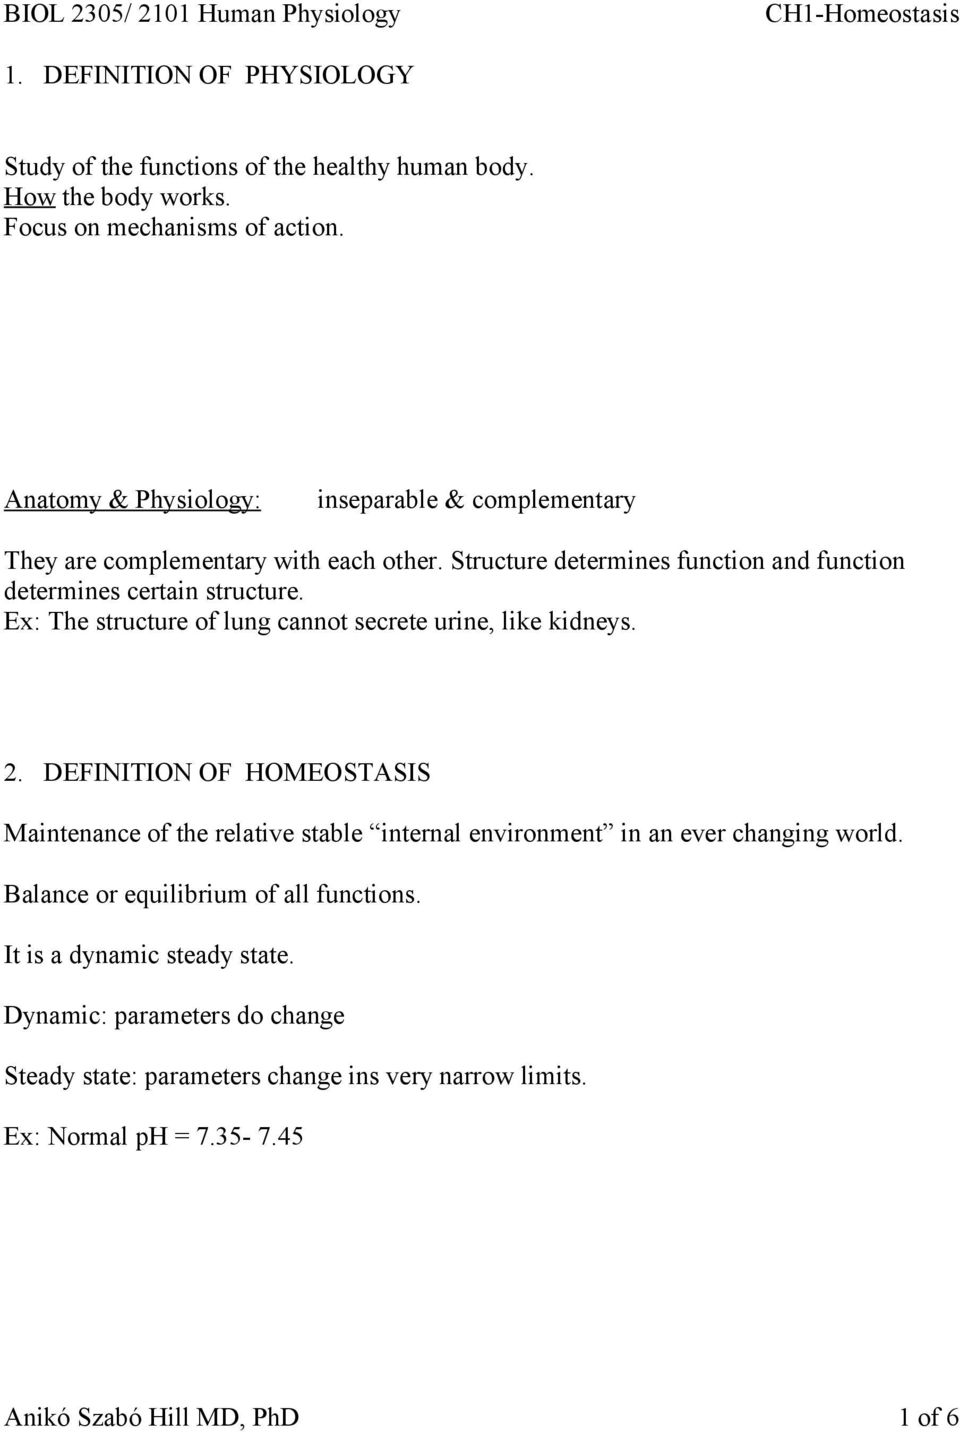 1 Definition Of Physiology Study Of The Functions Of The Healthy